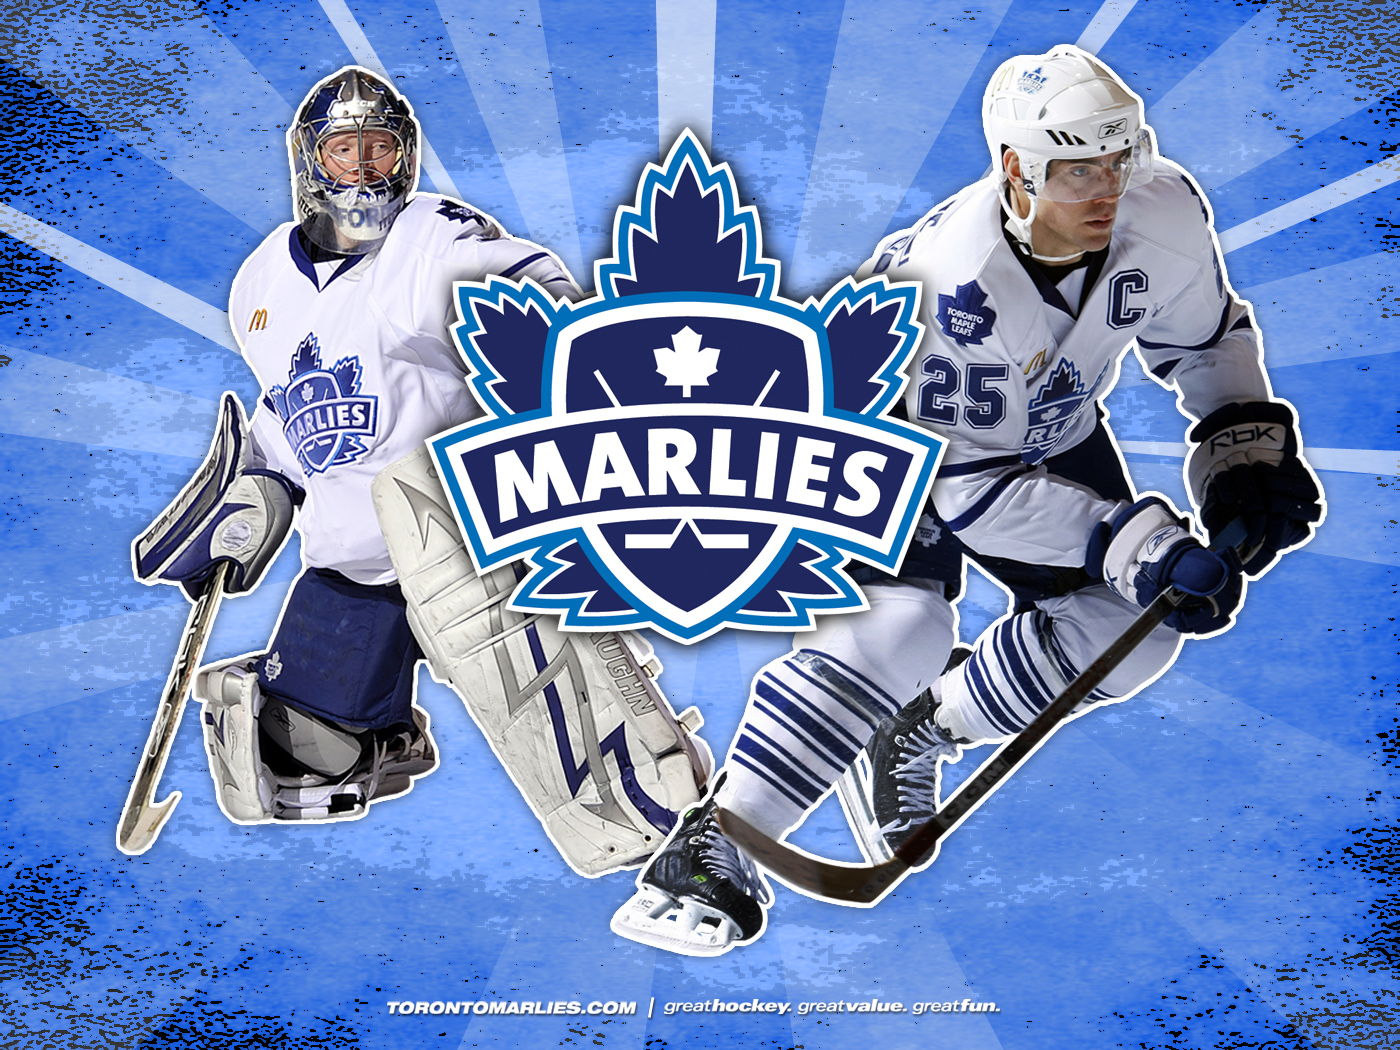 Image Result For Toronto Marlies